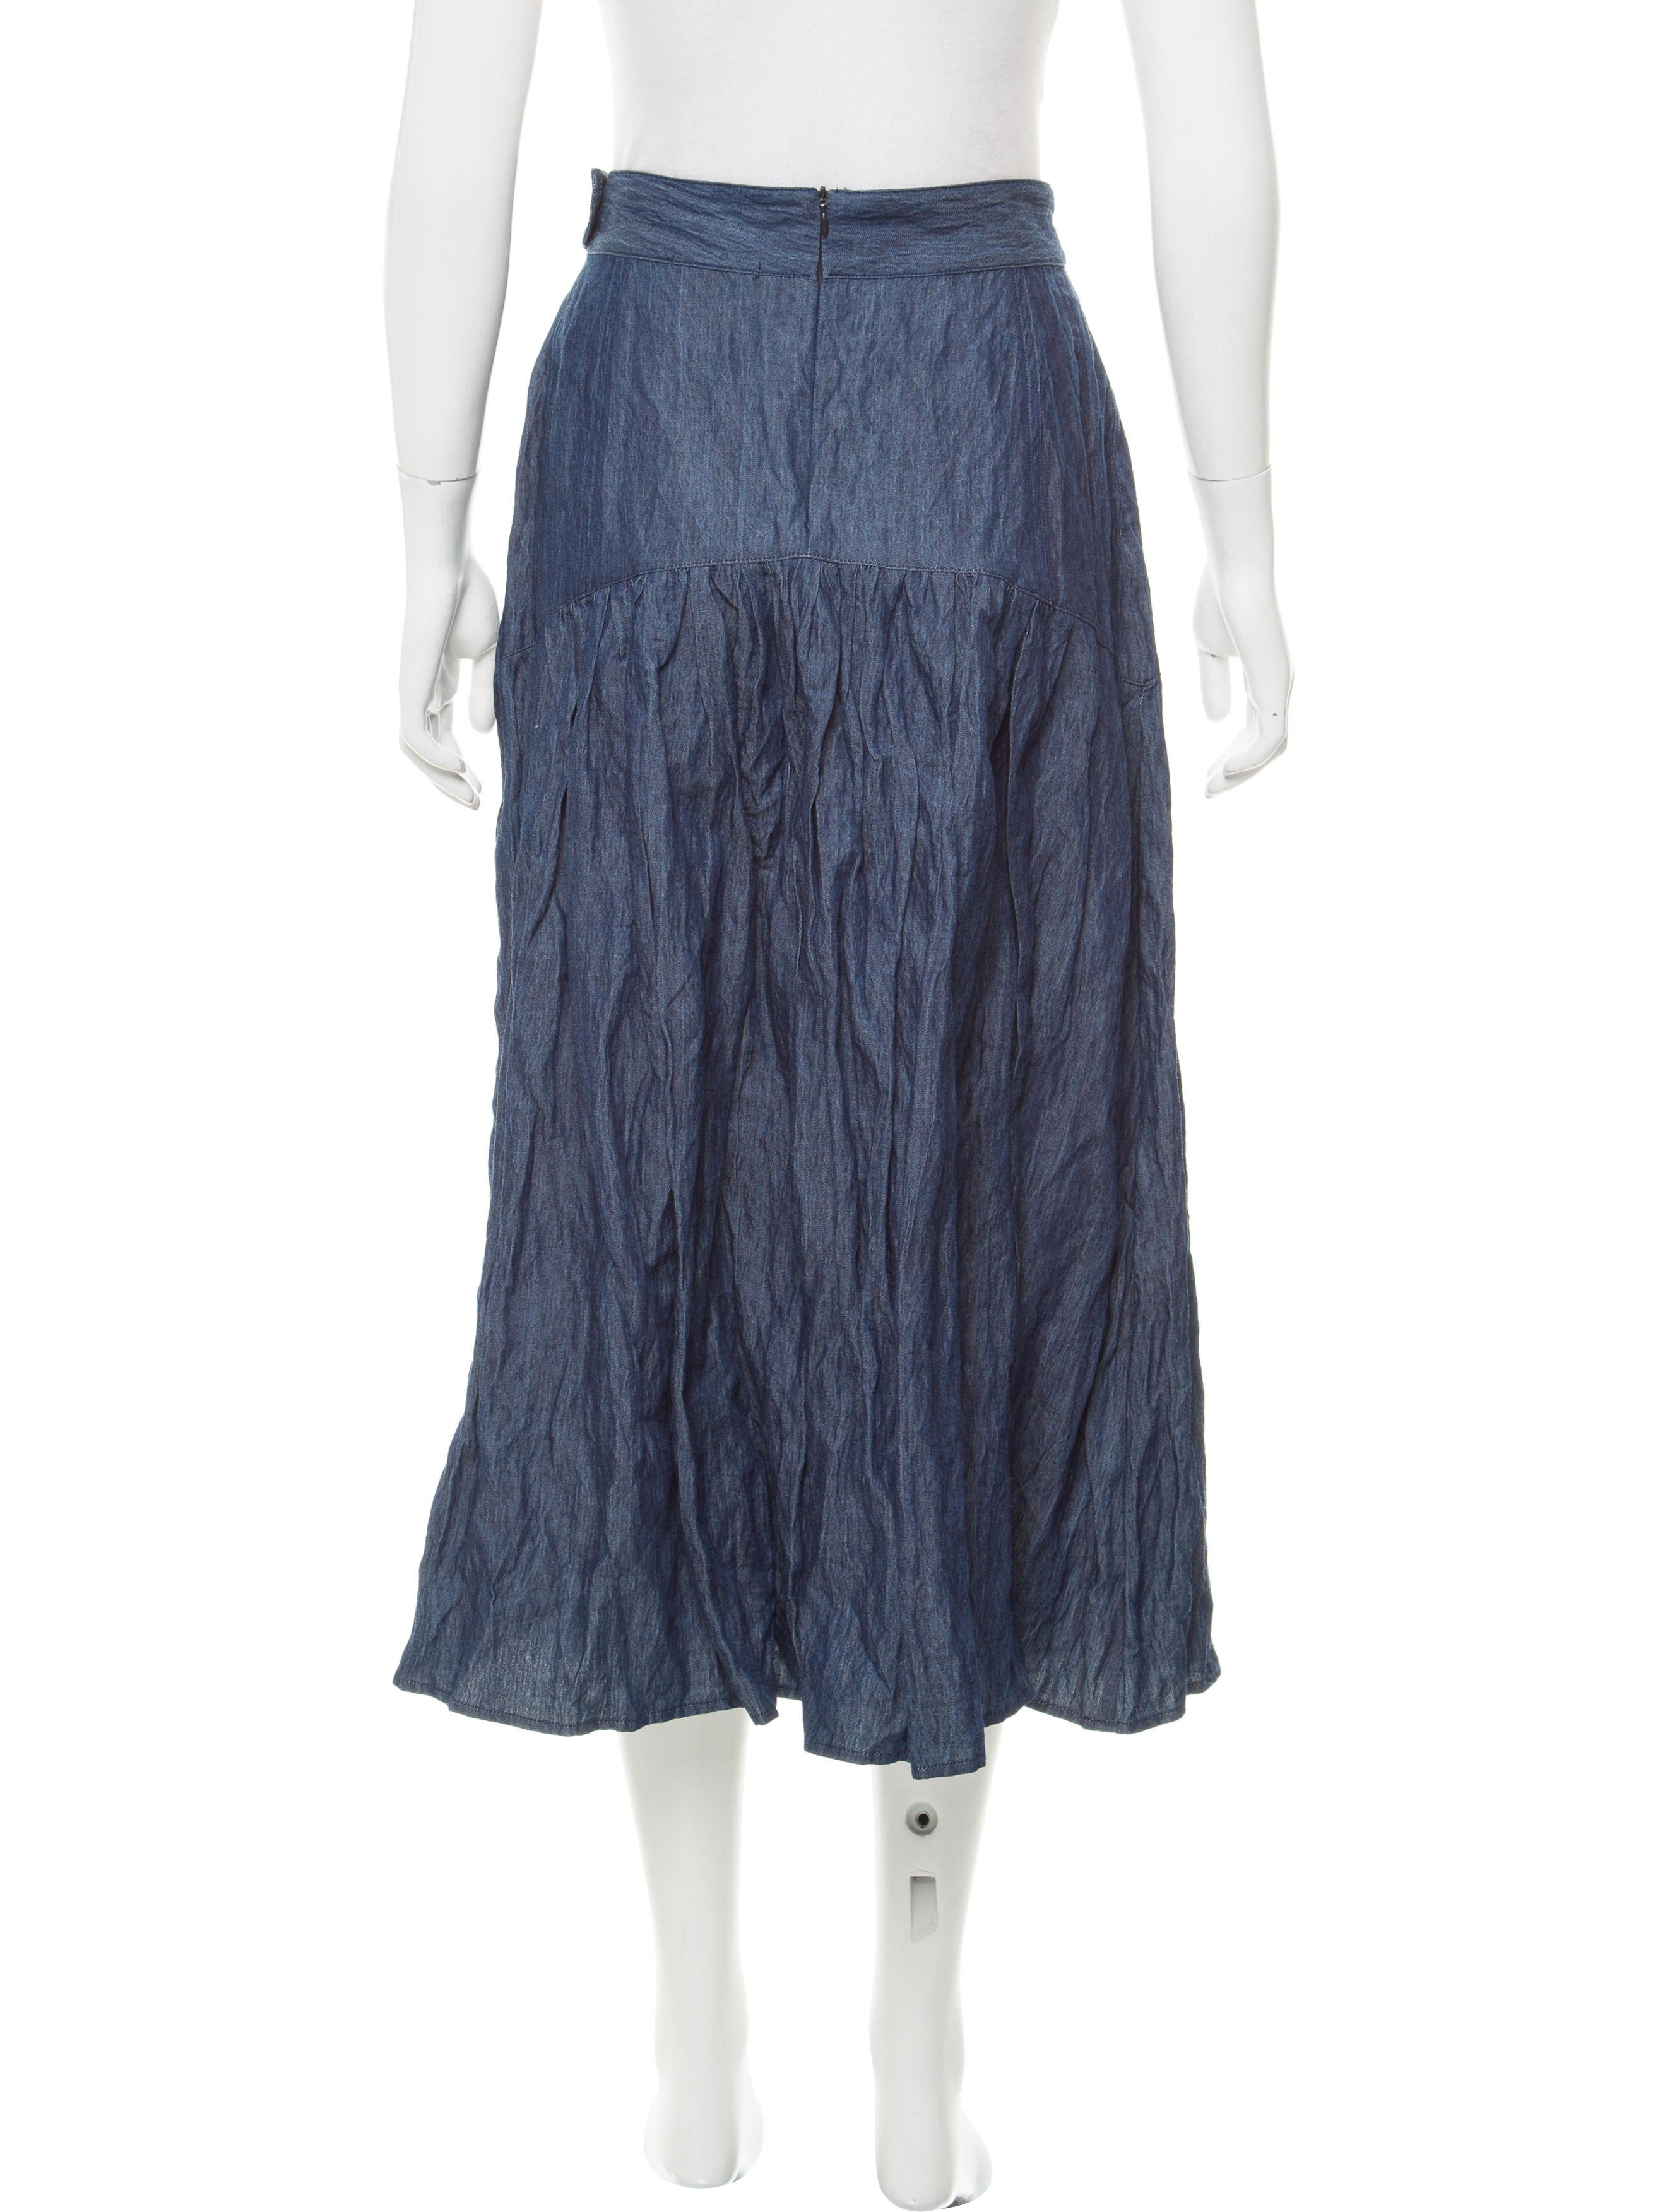 Clothing Denim Skirt 10